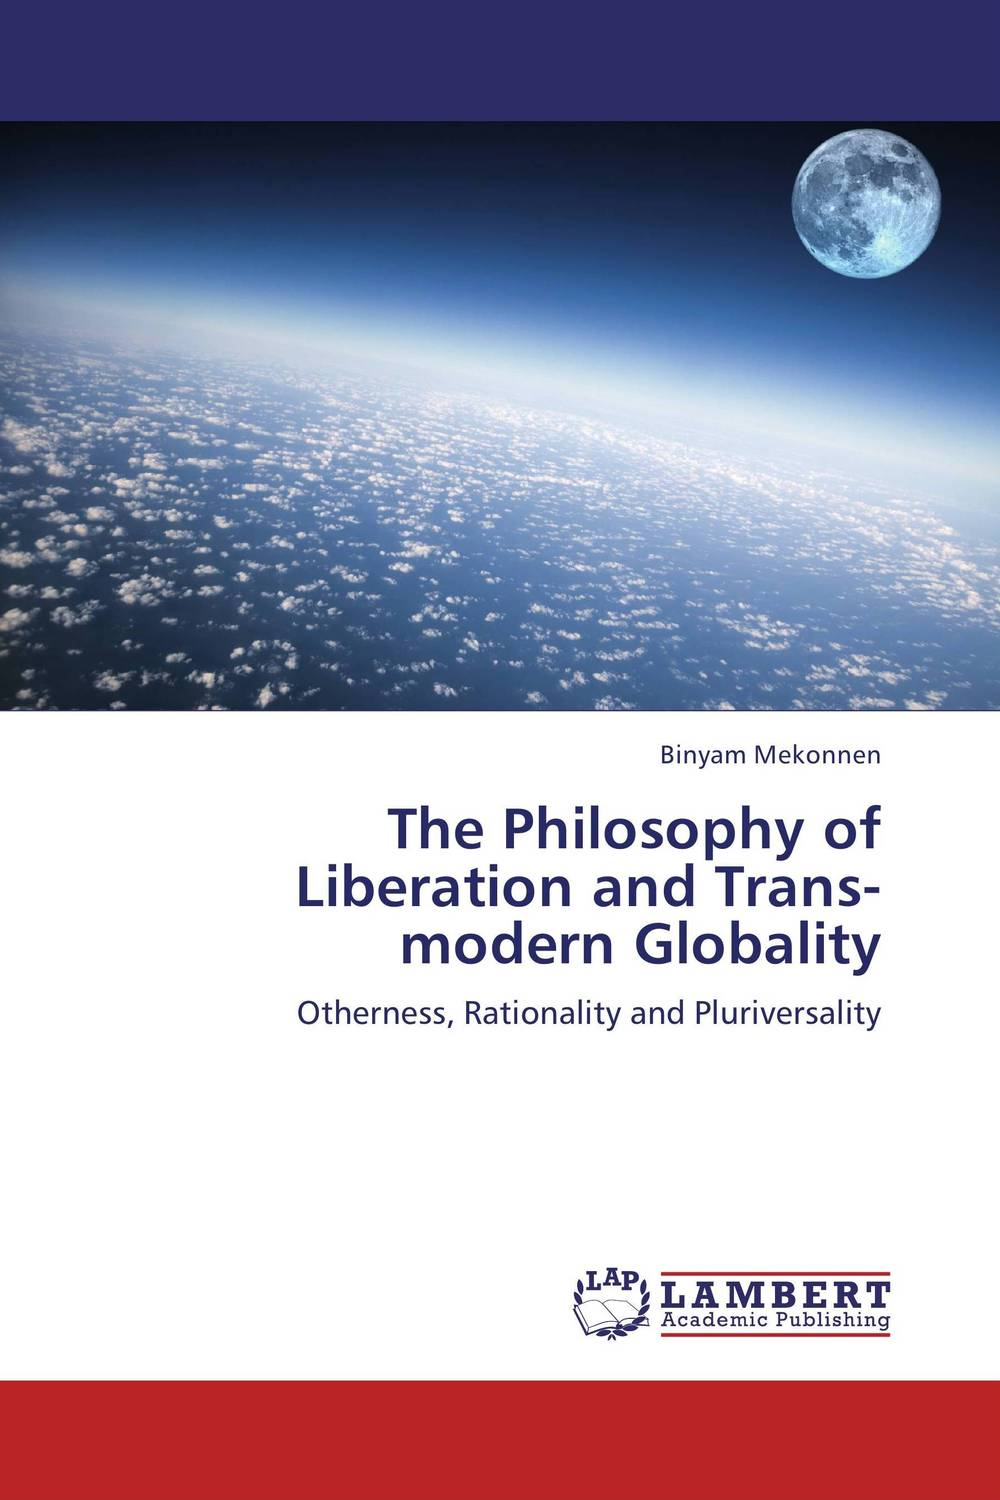 The Philosophy of Liberation and Trans-modern Globality